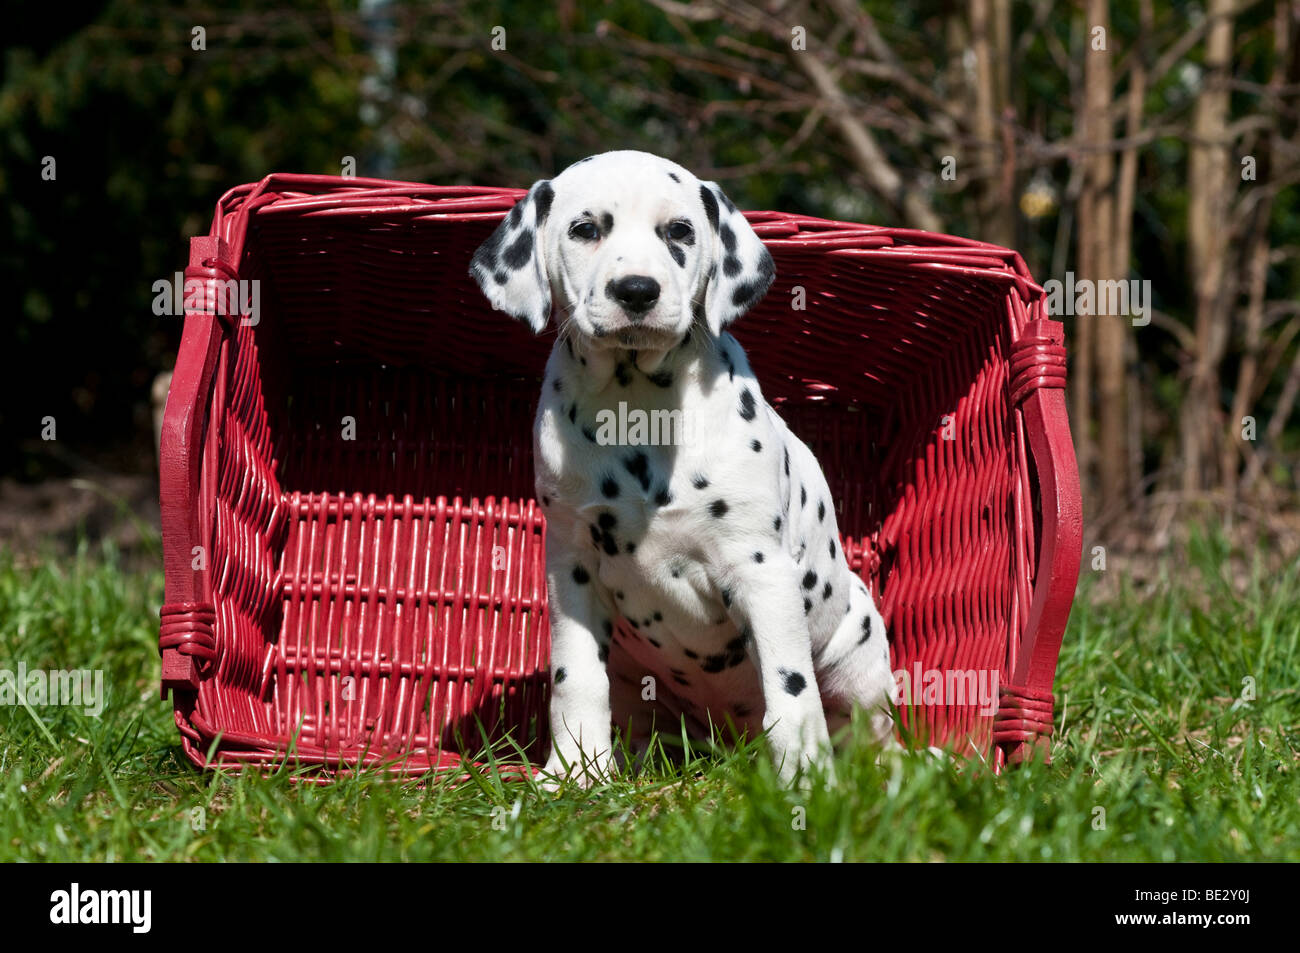 Dalmatian puppy sitting in front of a wicker basket - Stock Image